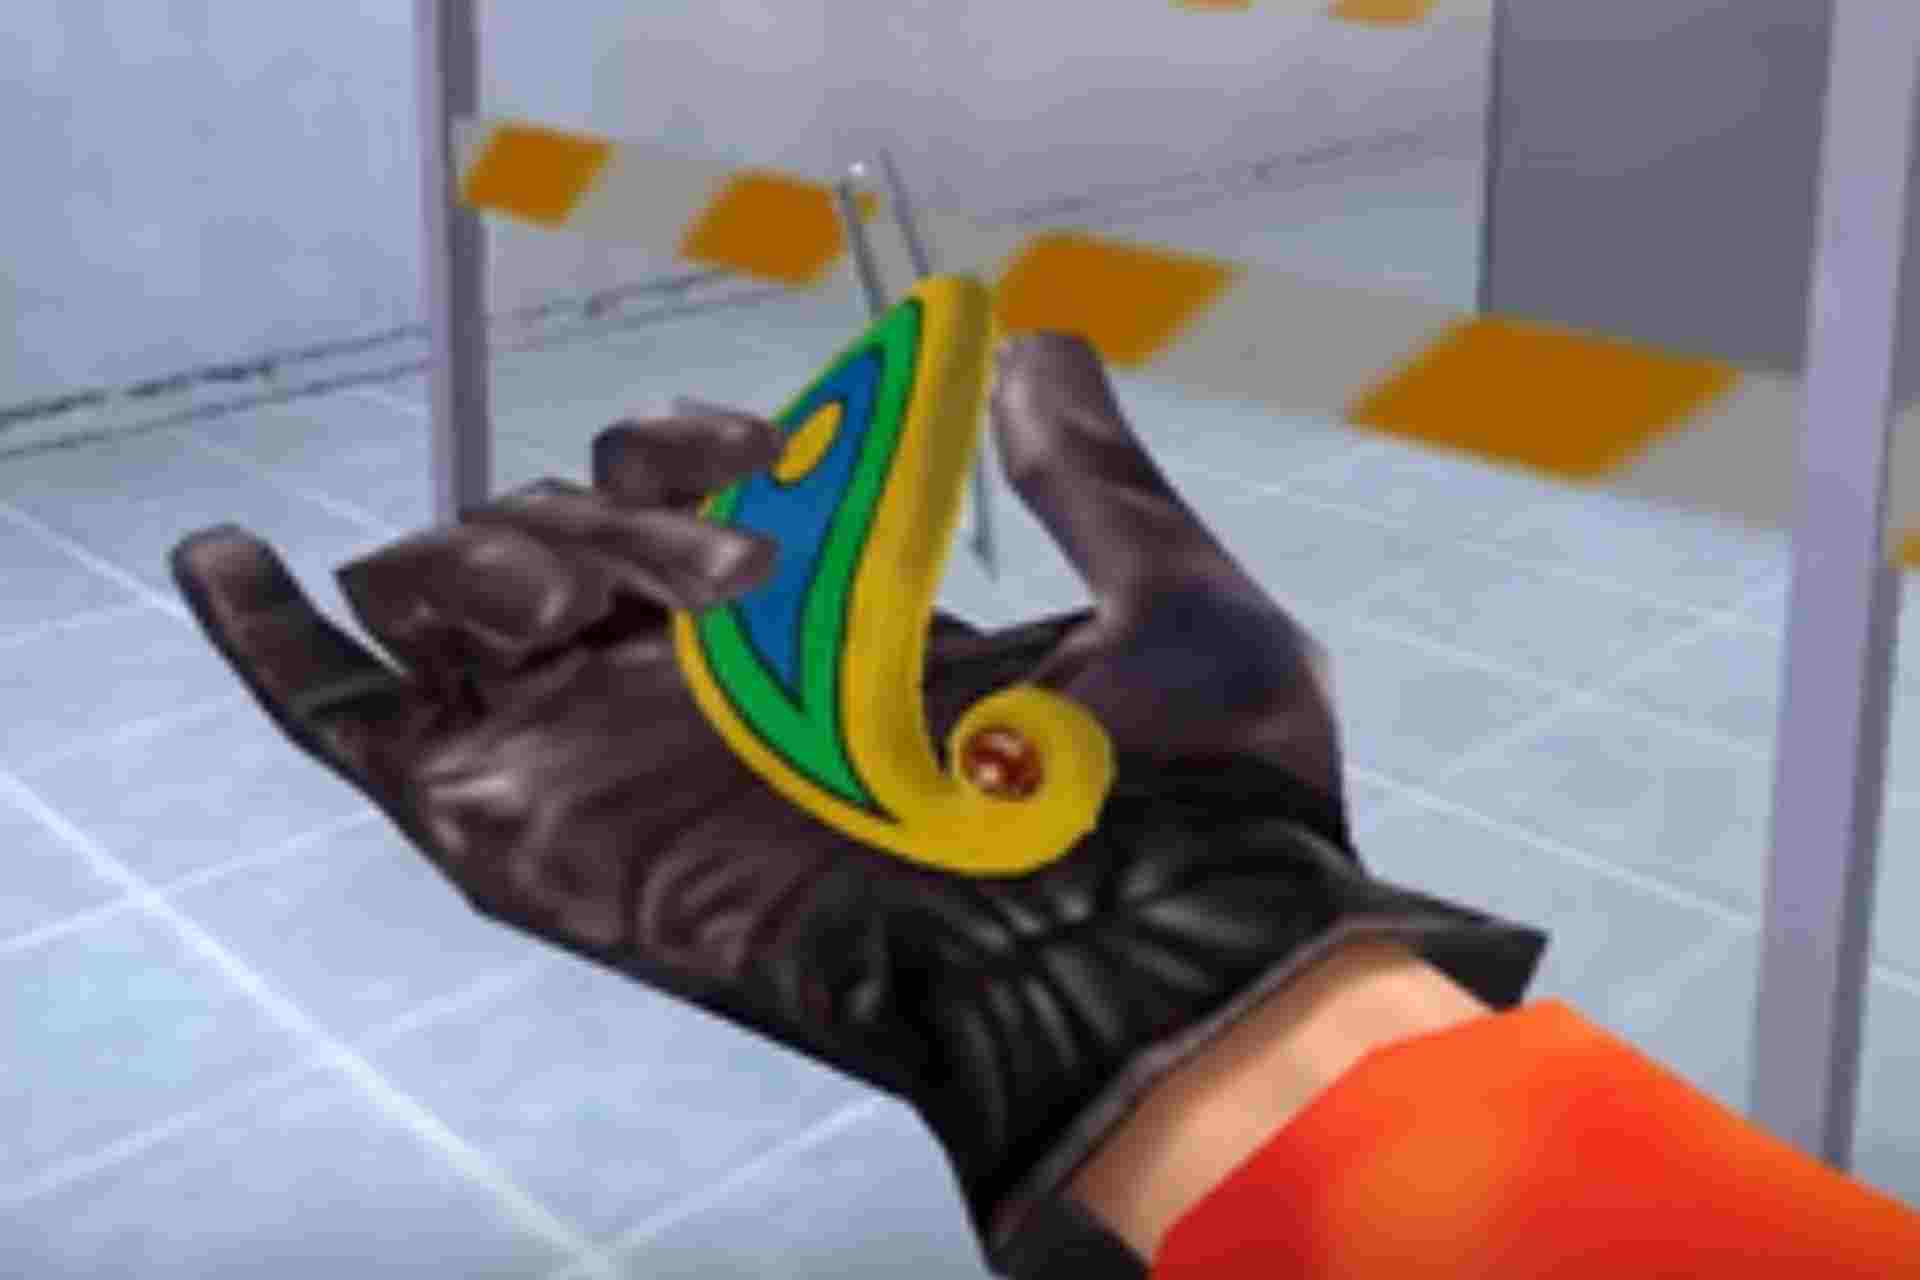 The Barette gadget is used to pick locks and also to slash enemies in No one lives forever